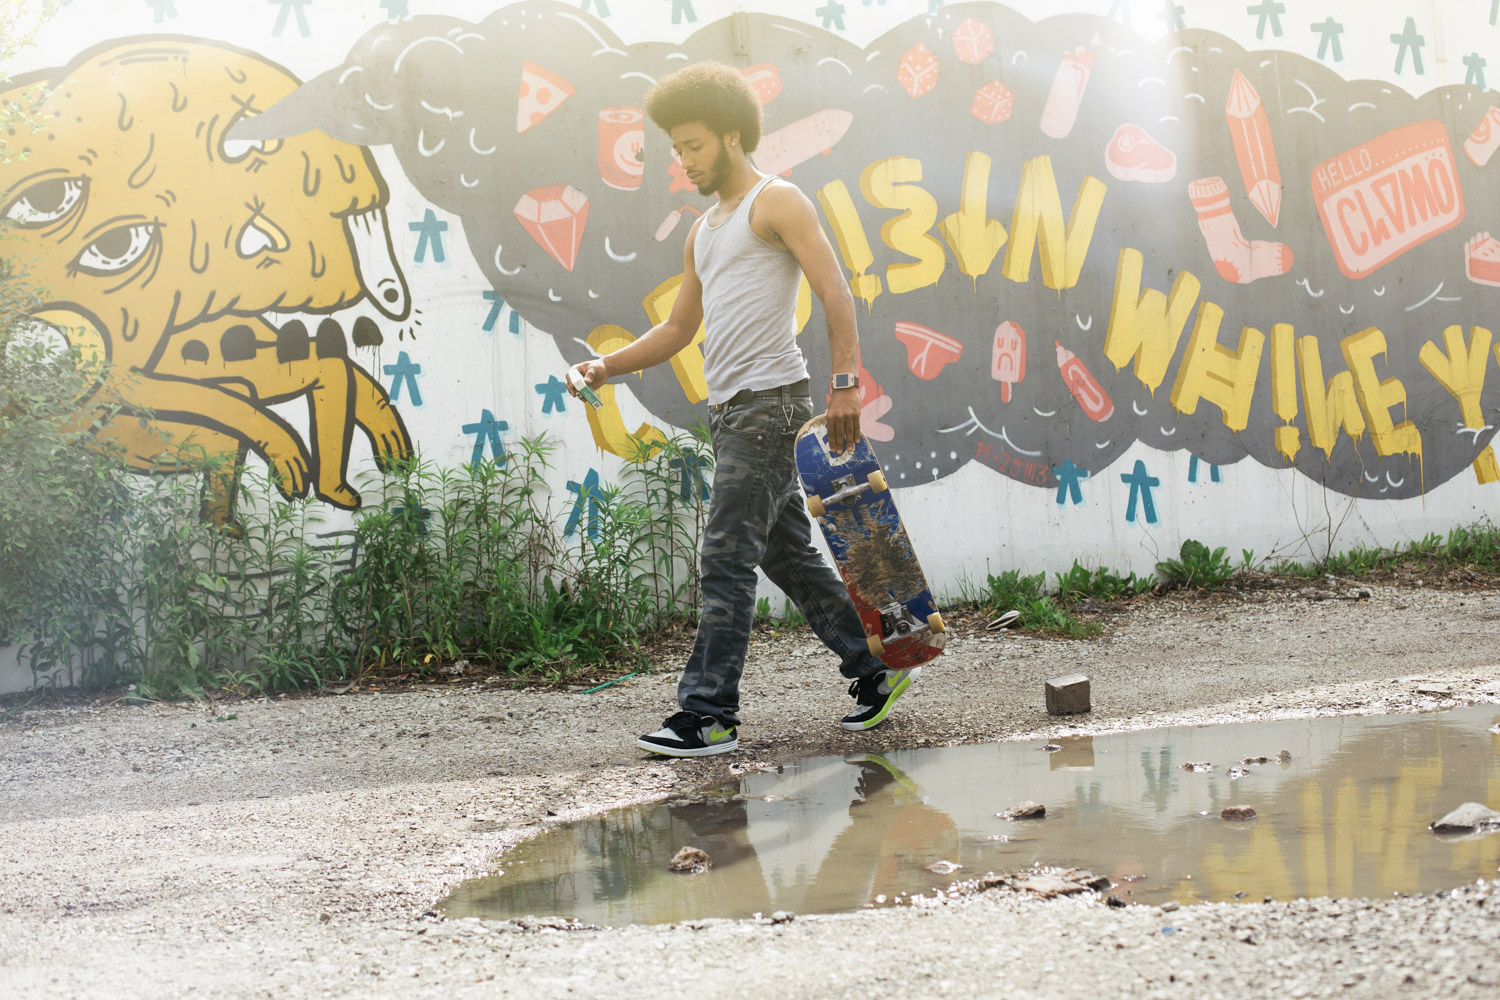 graffiti-and-skateboarding